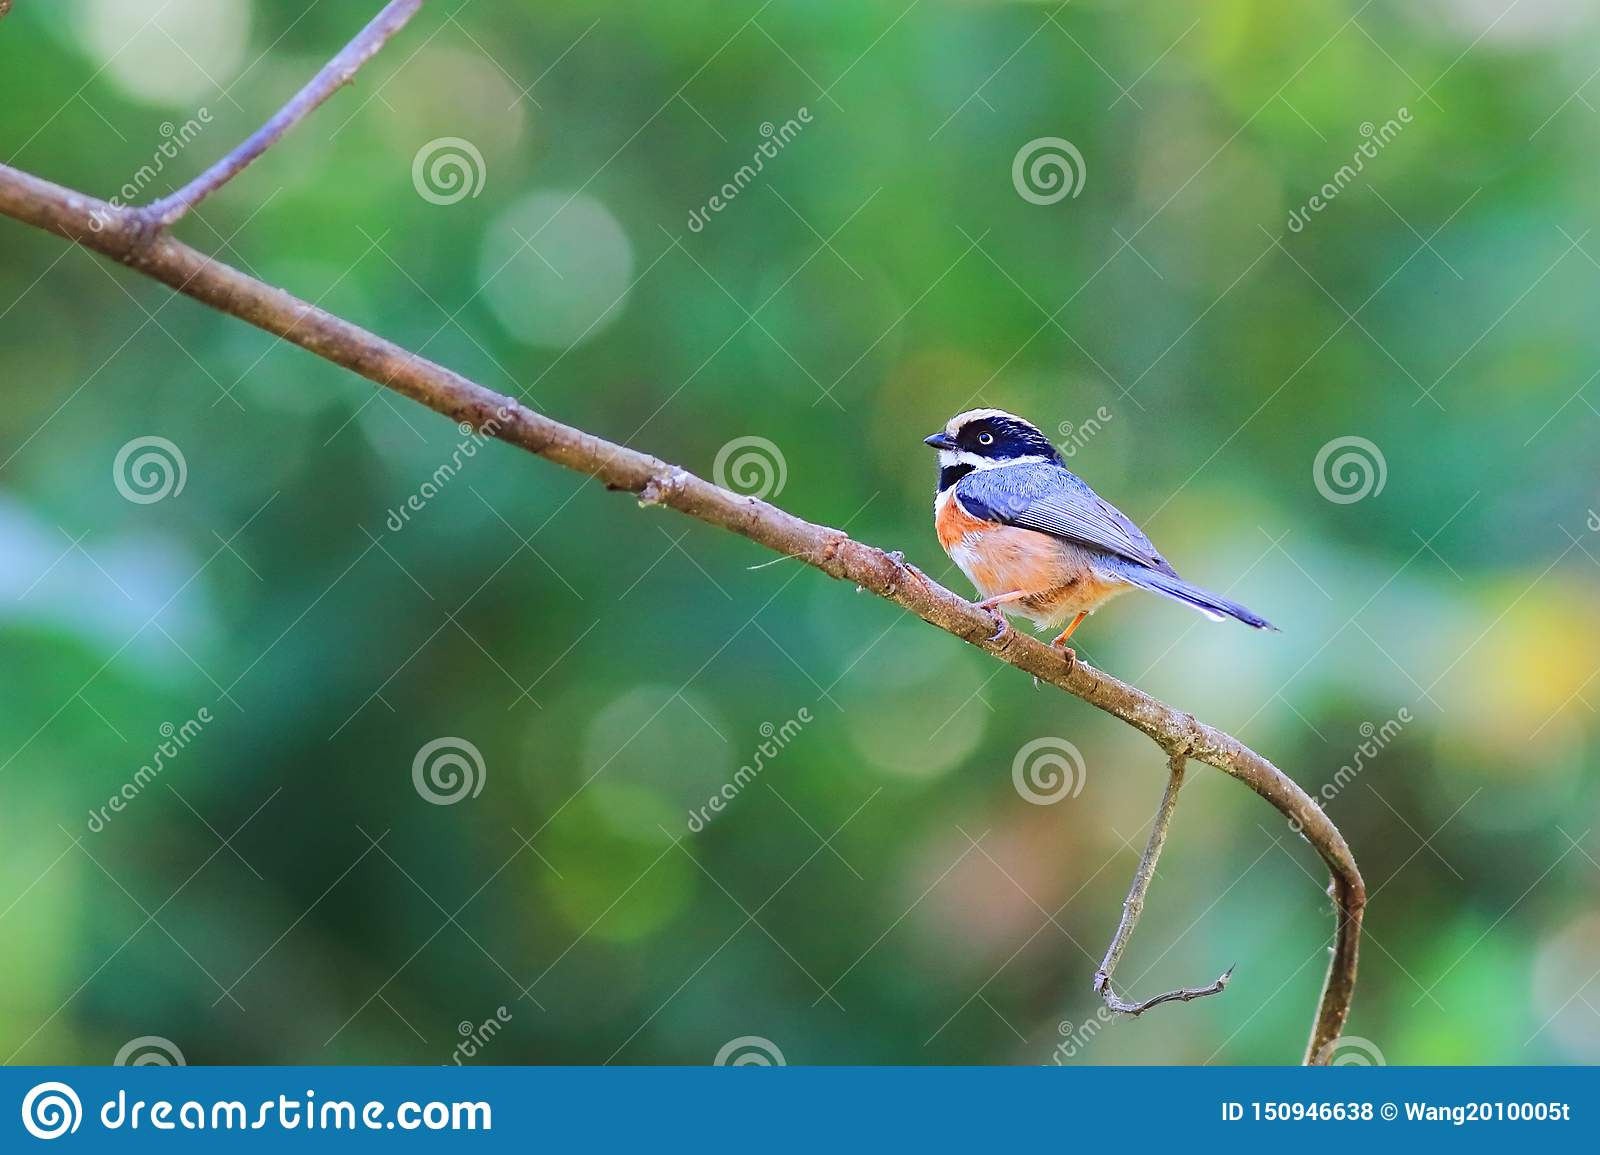 Black-throated Bushtit Very beautiful color